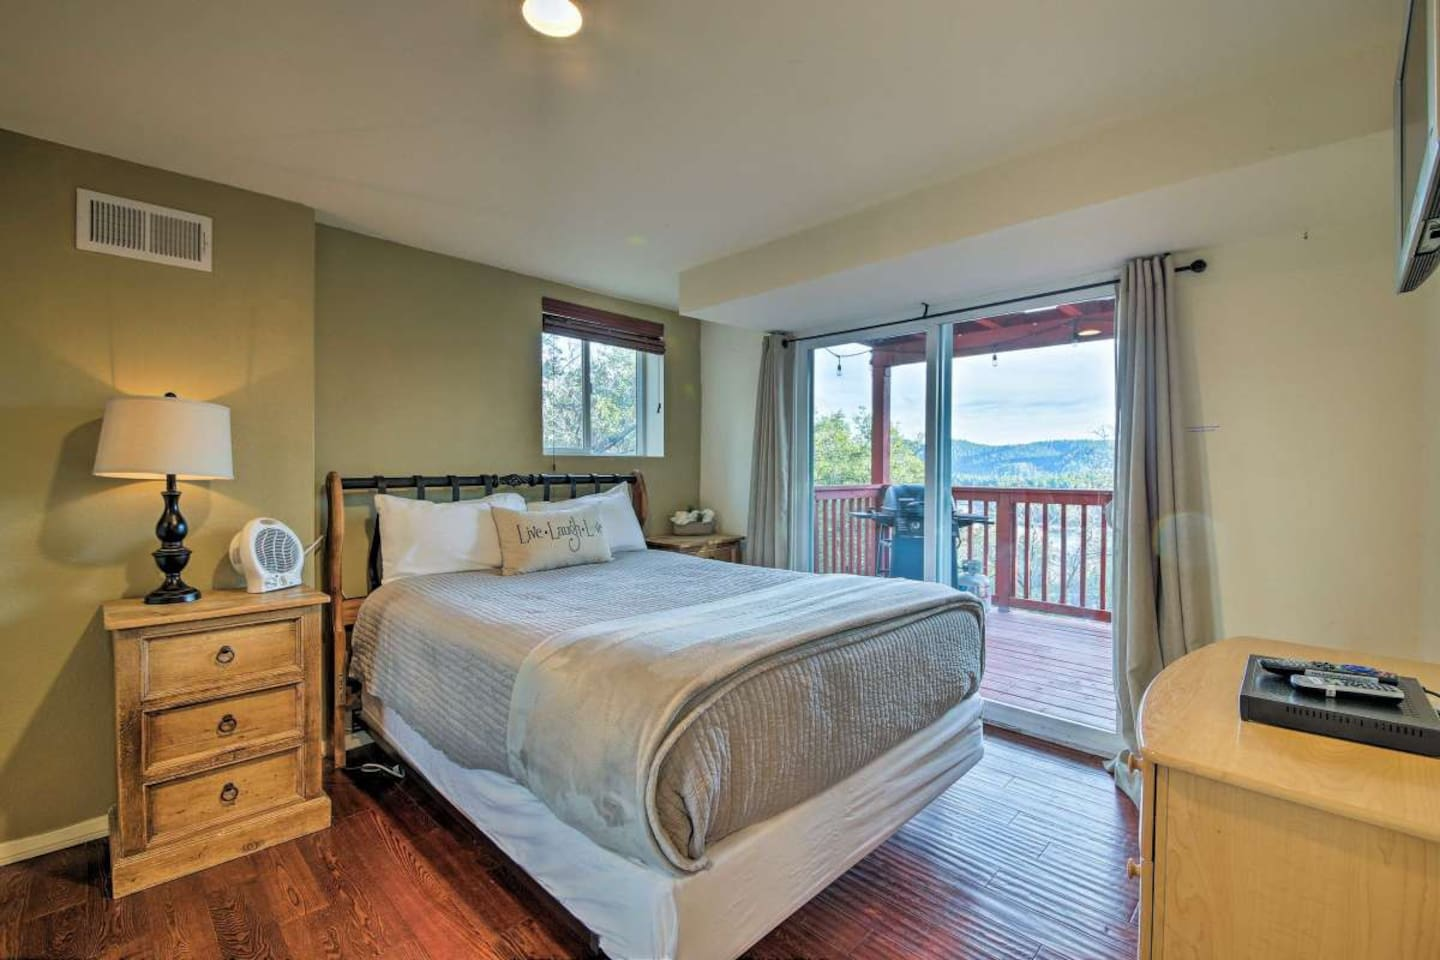 Wake up in a PLUSH QUEEN sized bed looking at the mountain scape from your pillow. Step out onto your spacious BALCONY and have your coffee in the fresh mountain air.